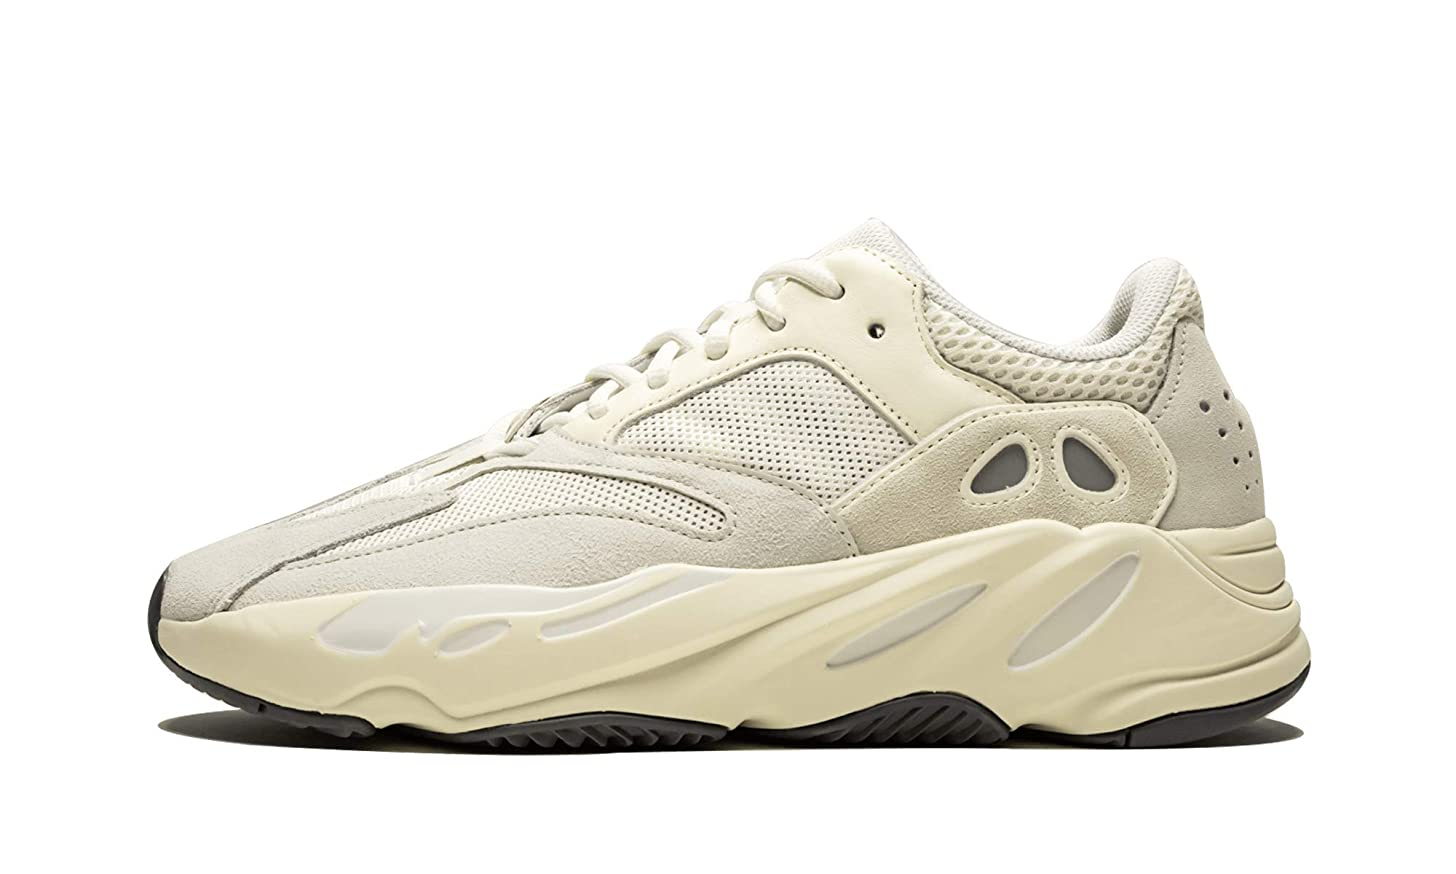 adidas Yeezy Boost 700 (Analog,8)